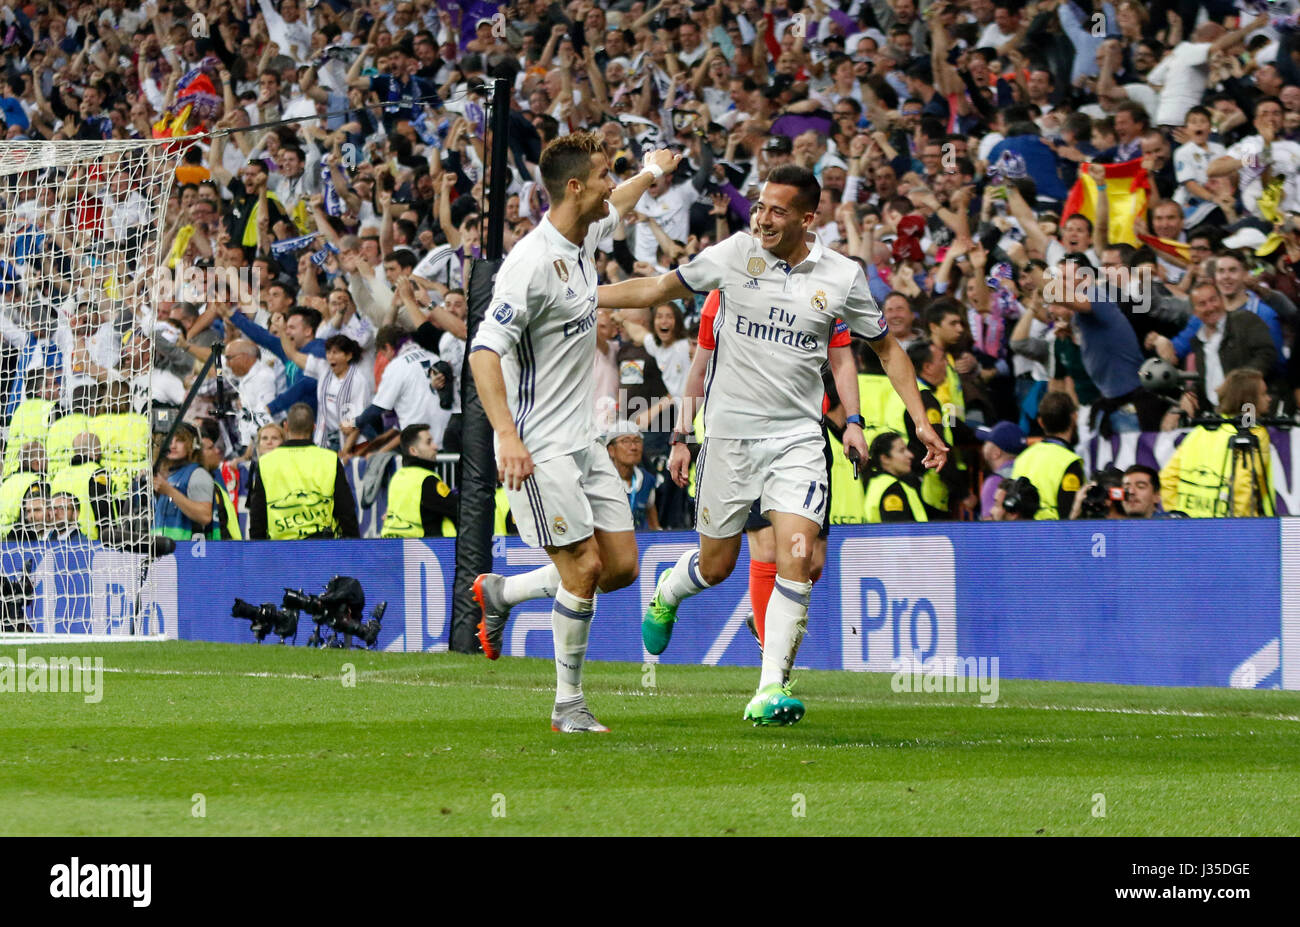 Madrid, Spain. 02nd May, 2017. 07 Cristiano Ronaldo (Real Madrid CF) y 17 Lucas Vazquez (Real Madrid CF) during - Stock Image